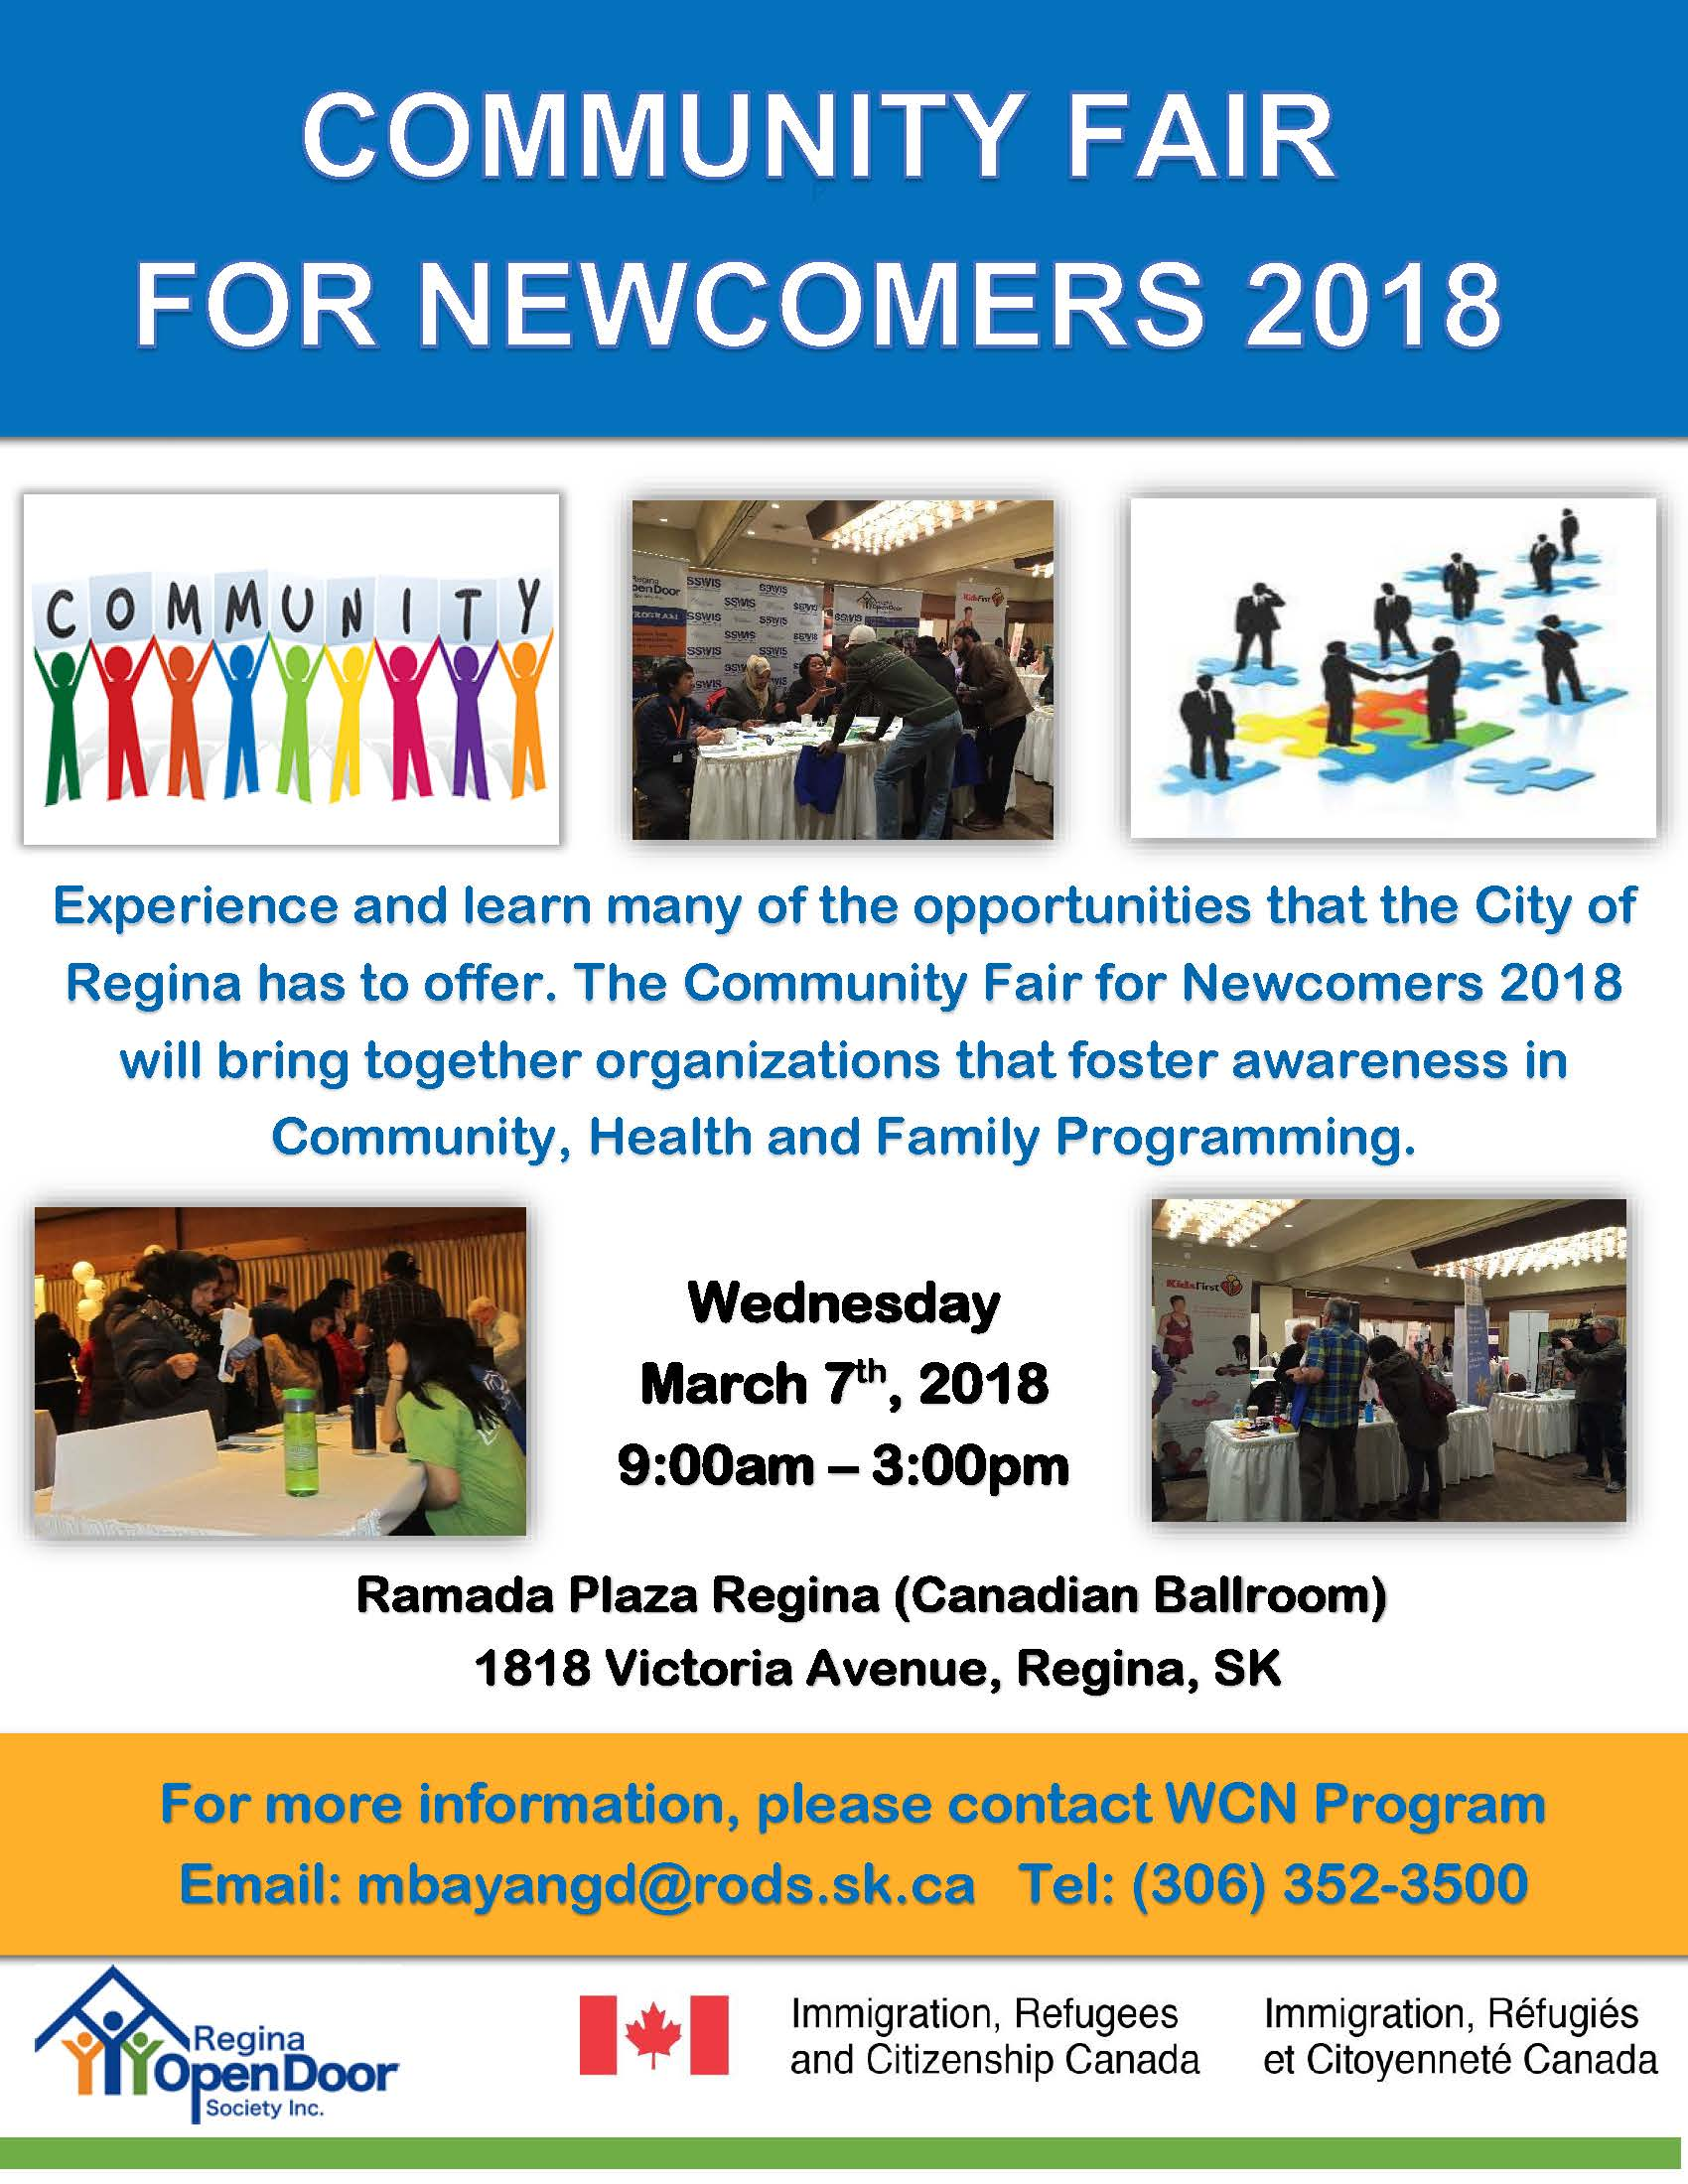 Community Fair for Newcomers 2018 - Wednesday March 7 at the Ramada Plaza - Image 1